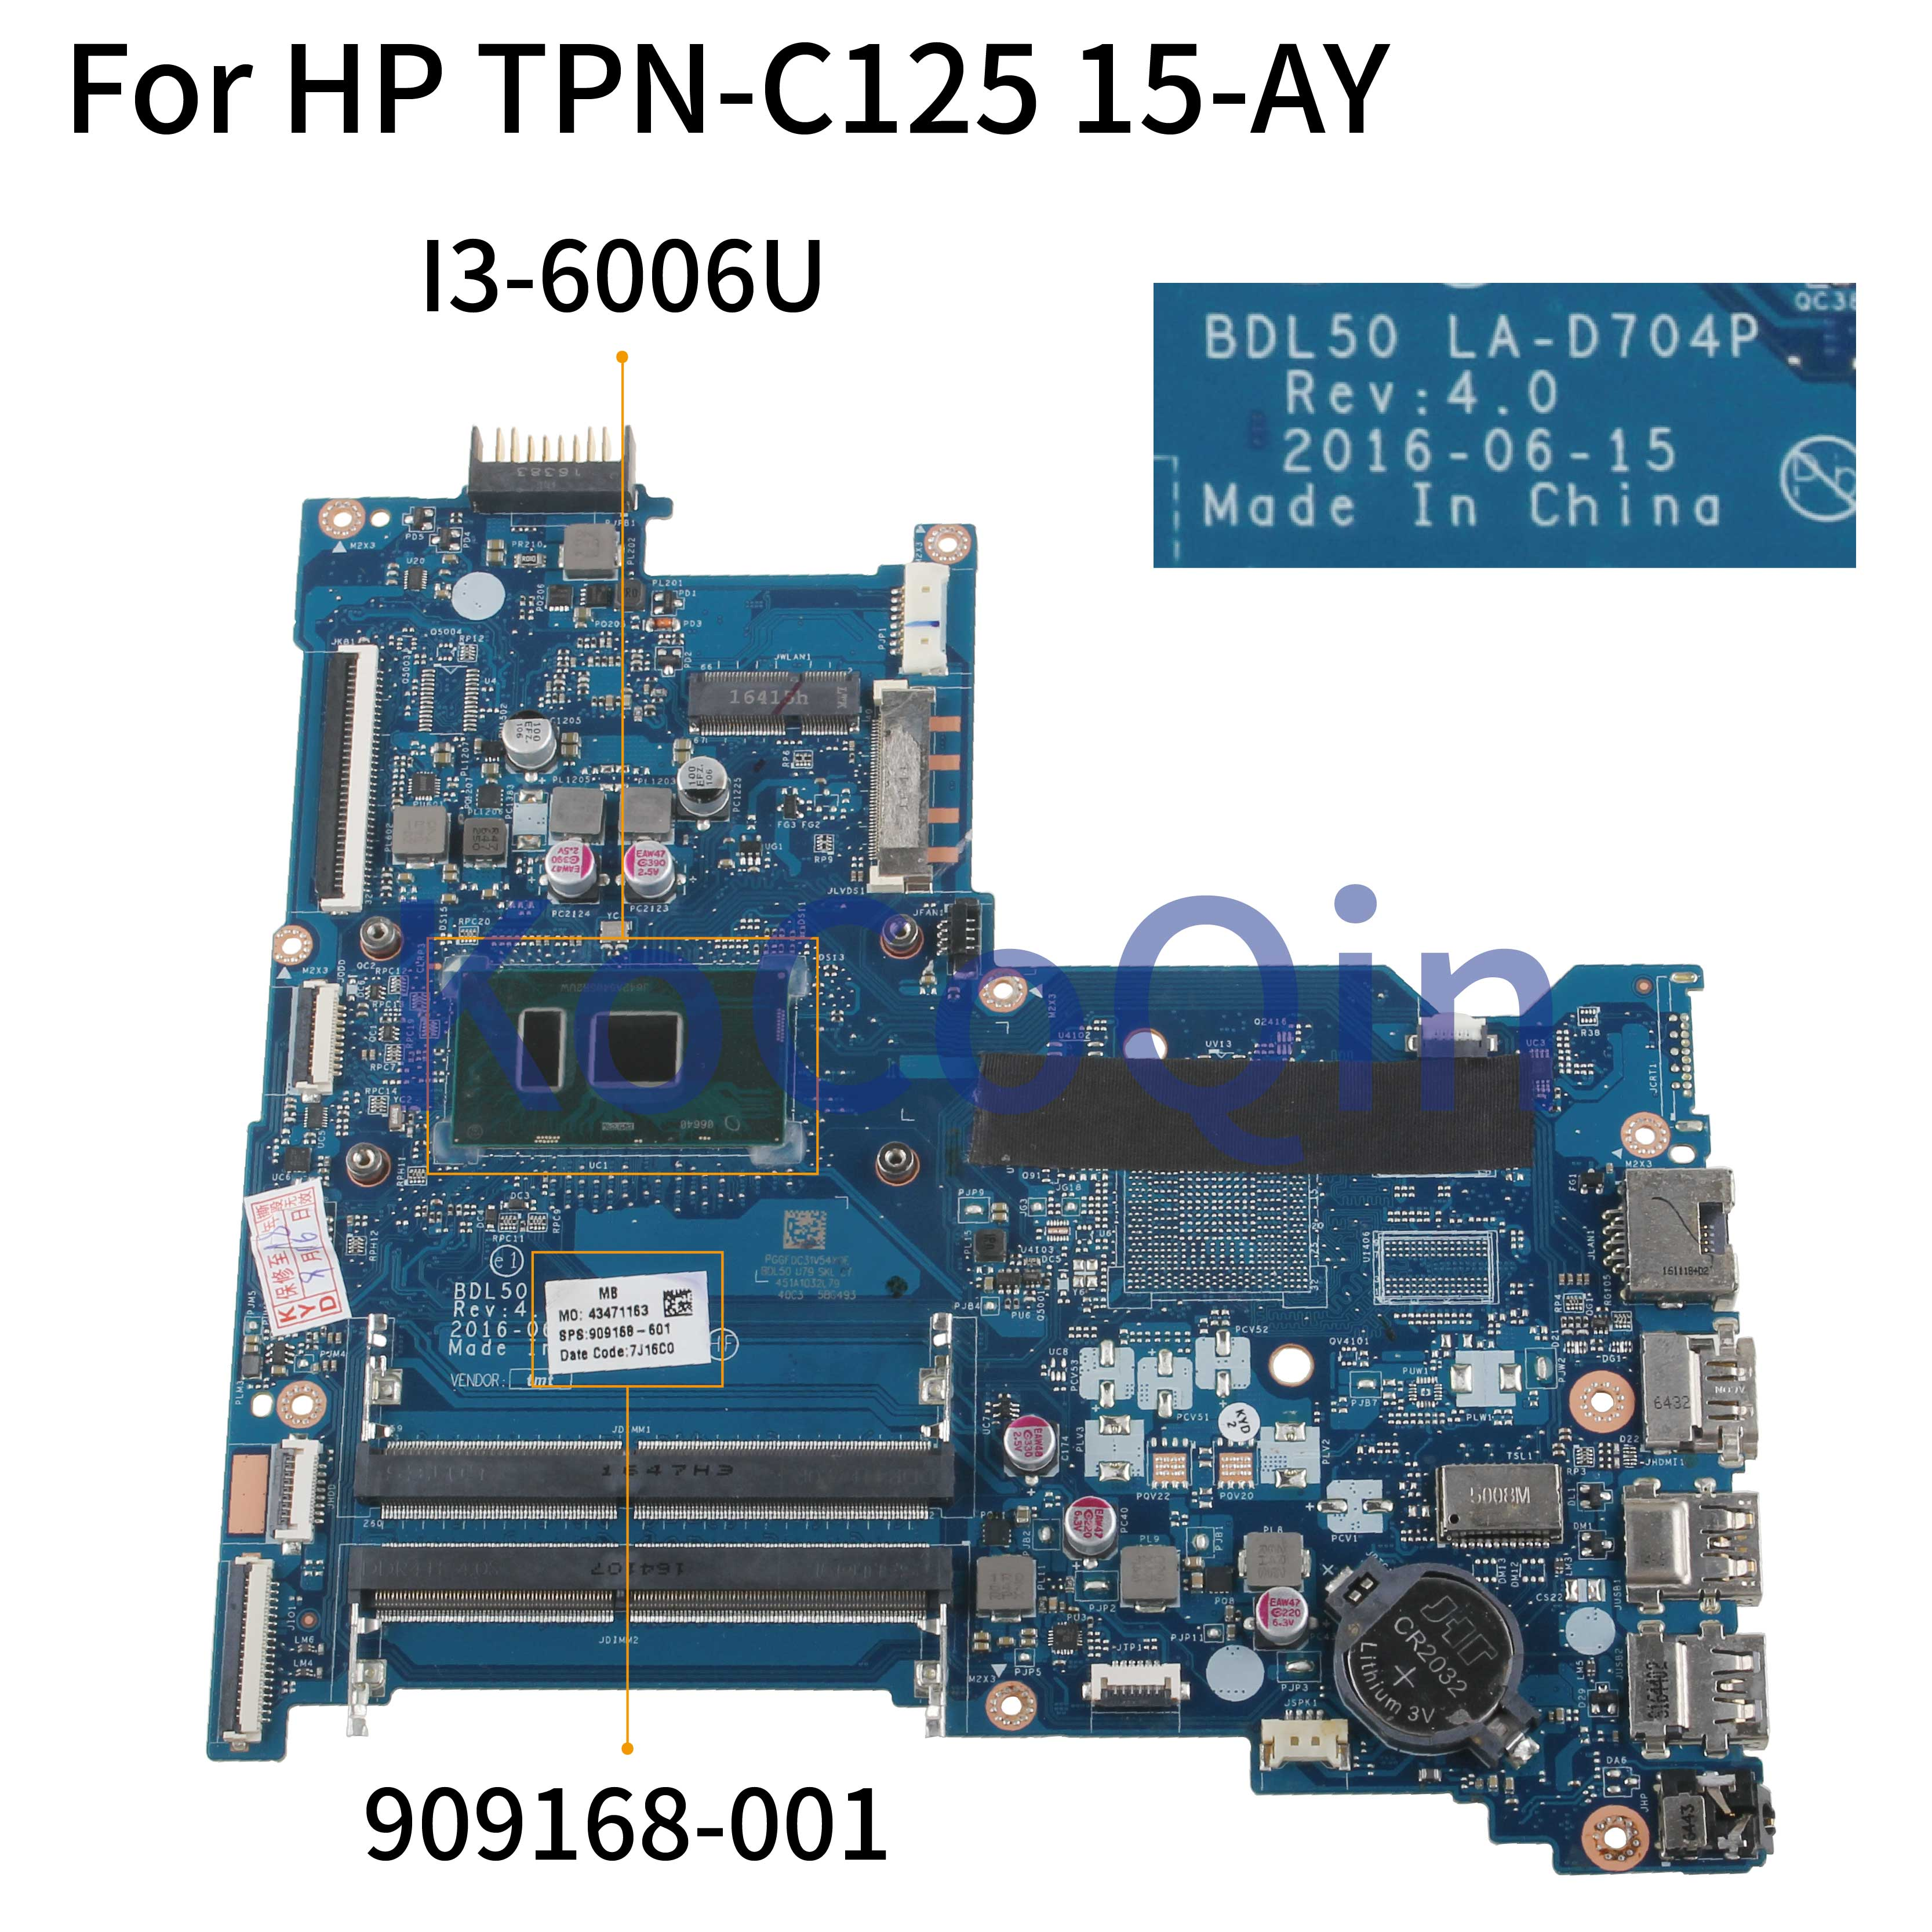 KoCoQin Laptop Motherboard For HP TPN-C125 15-AY Core I3-6006U Mainboard 909168-001 909168-601 BDL50 LA-D704P SR2UW